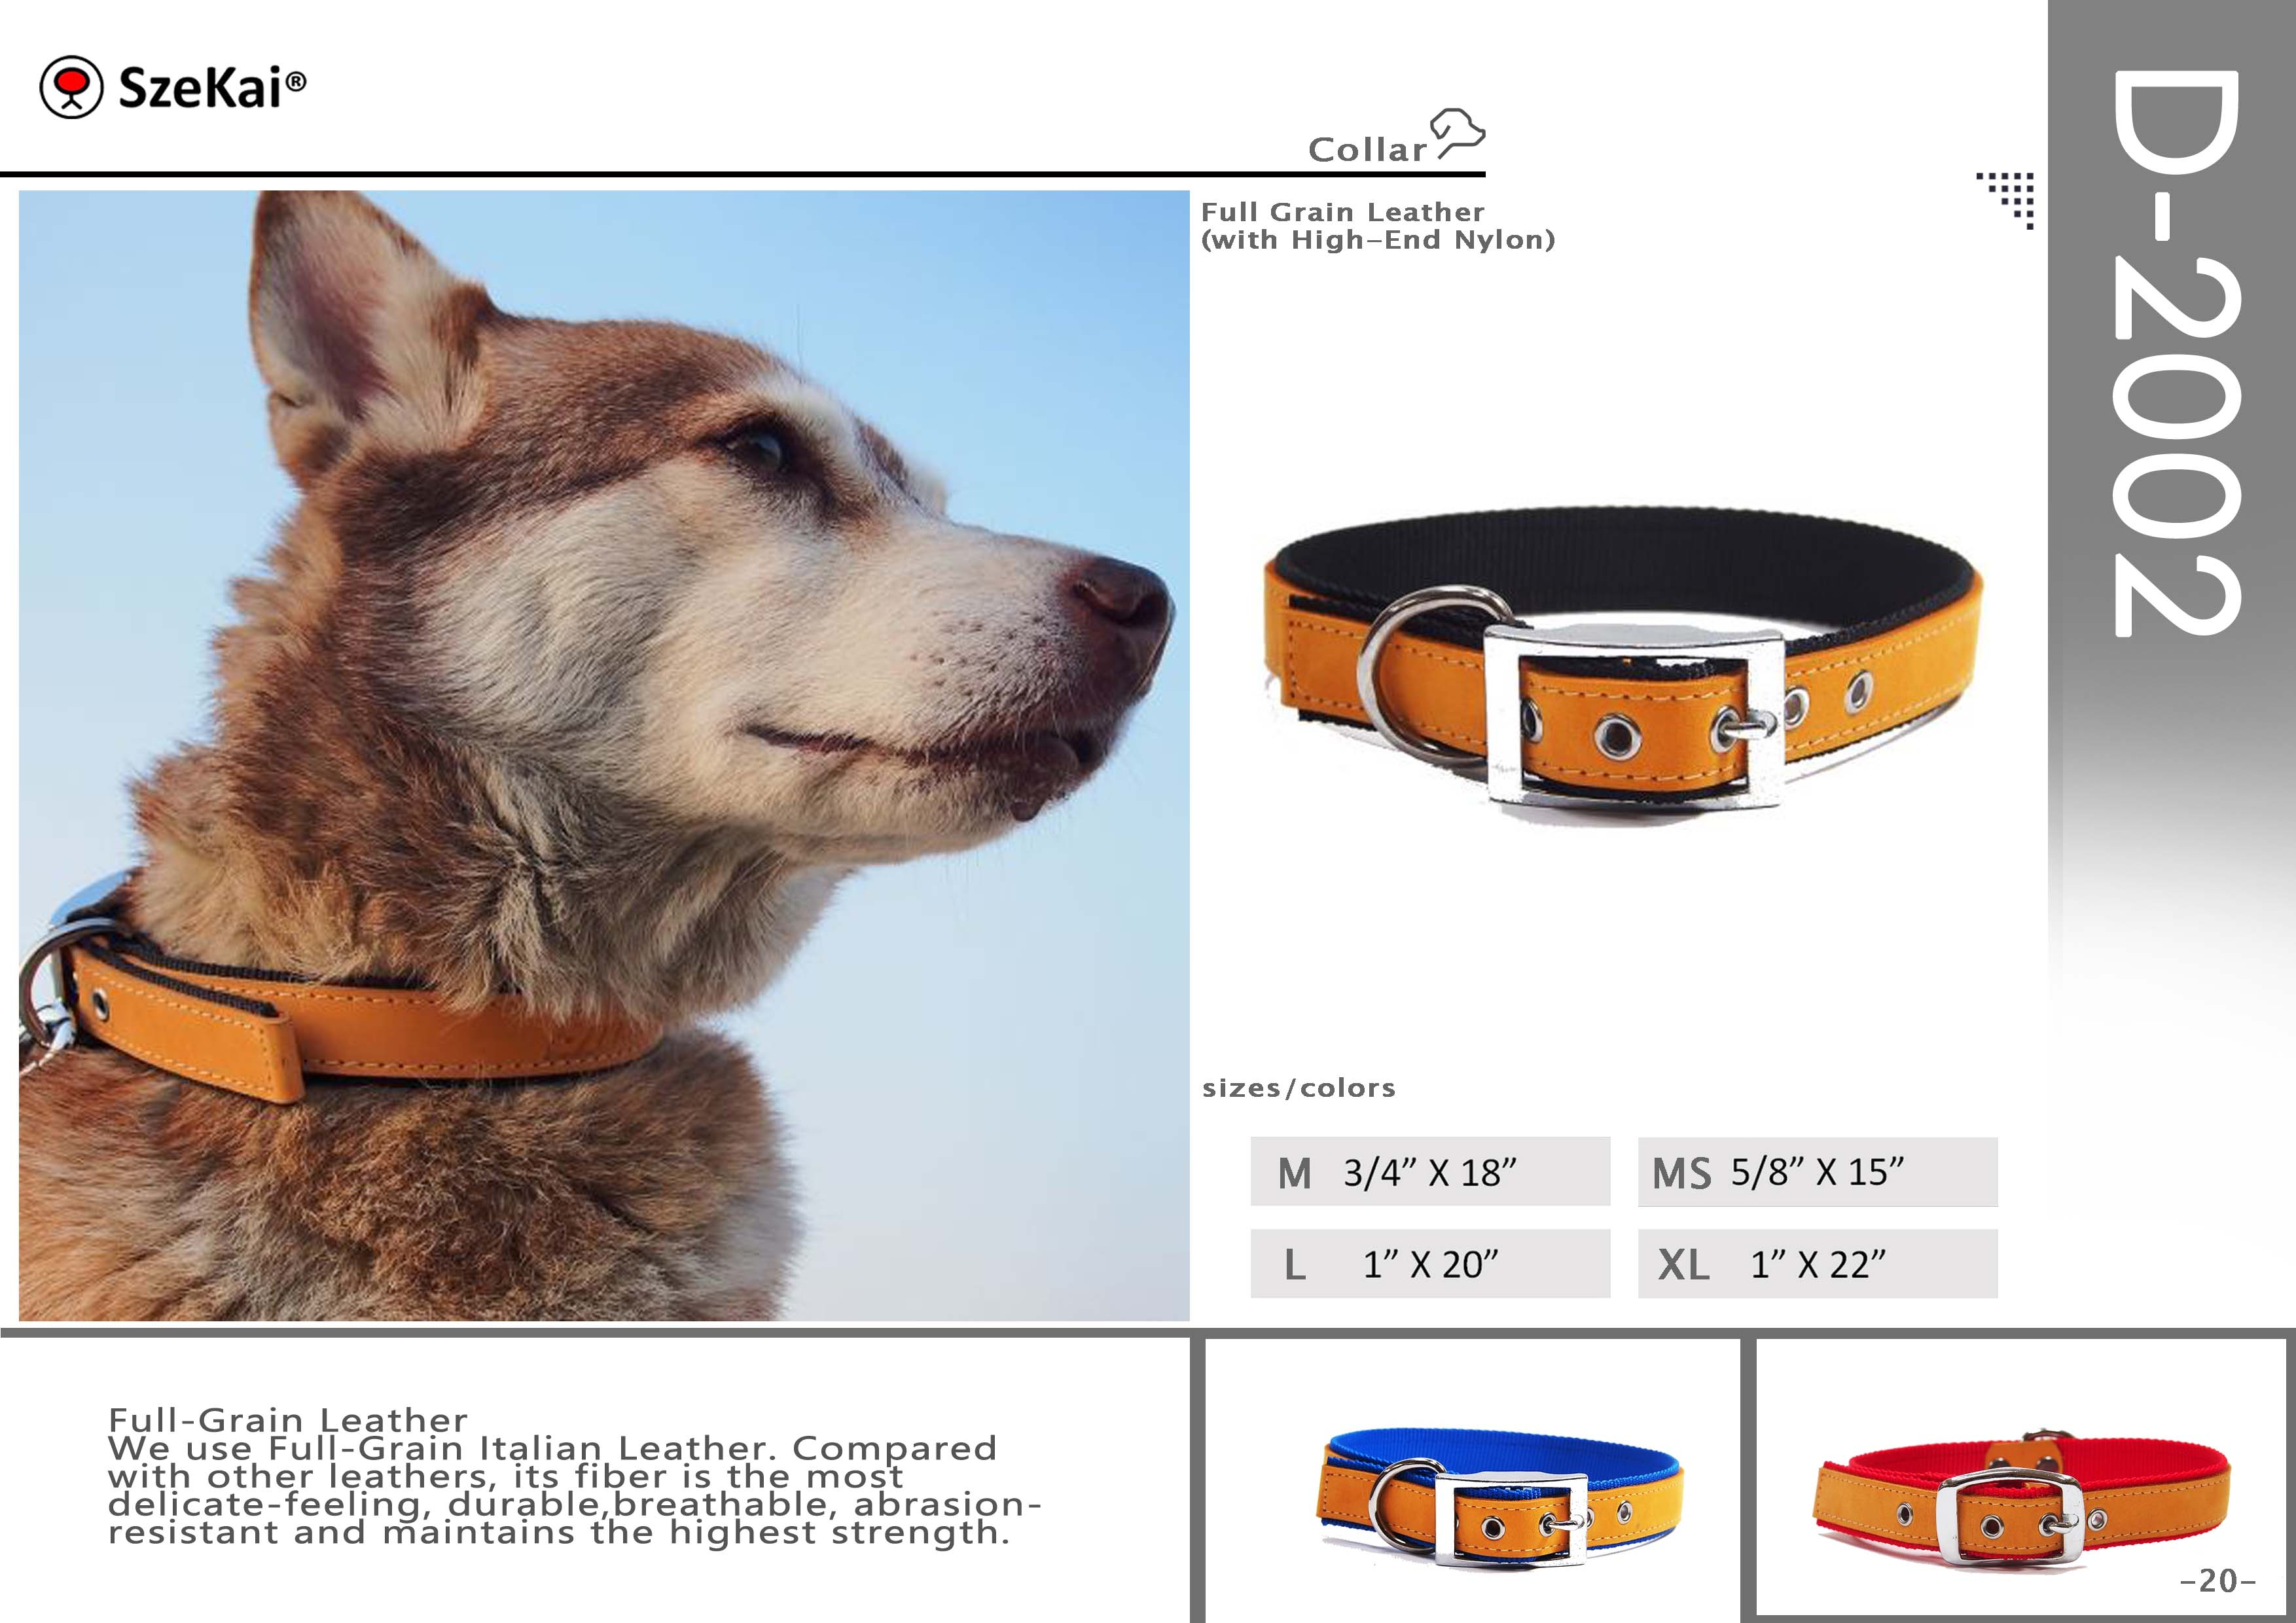 Full Grain Leather with High-End Nylon Collar